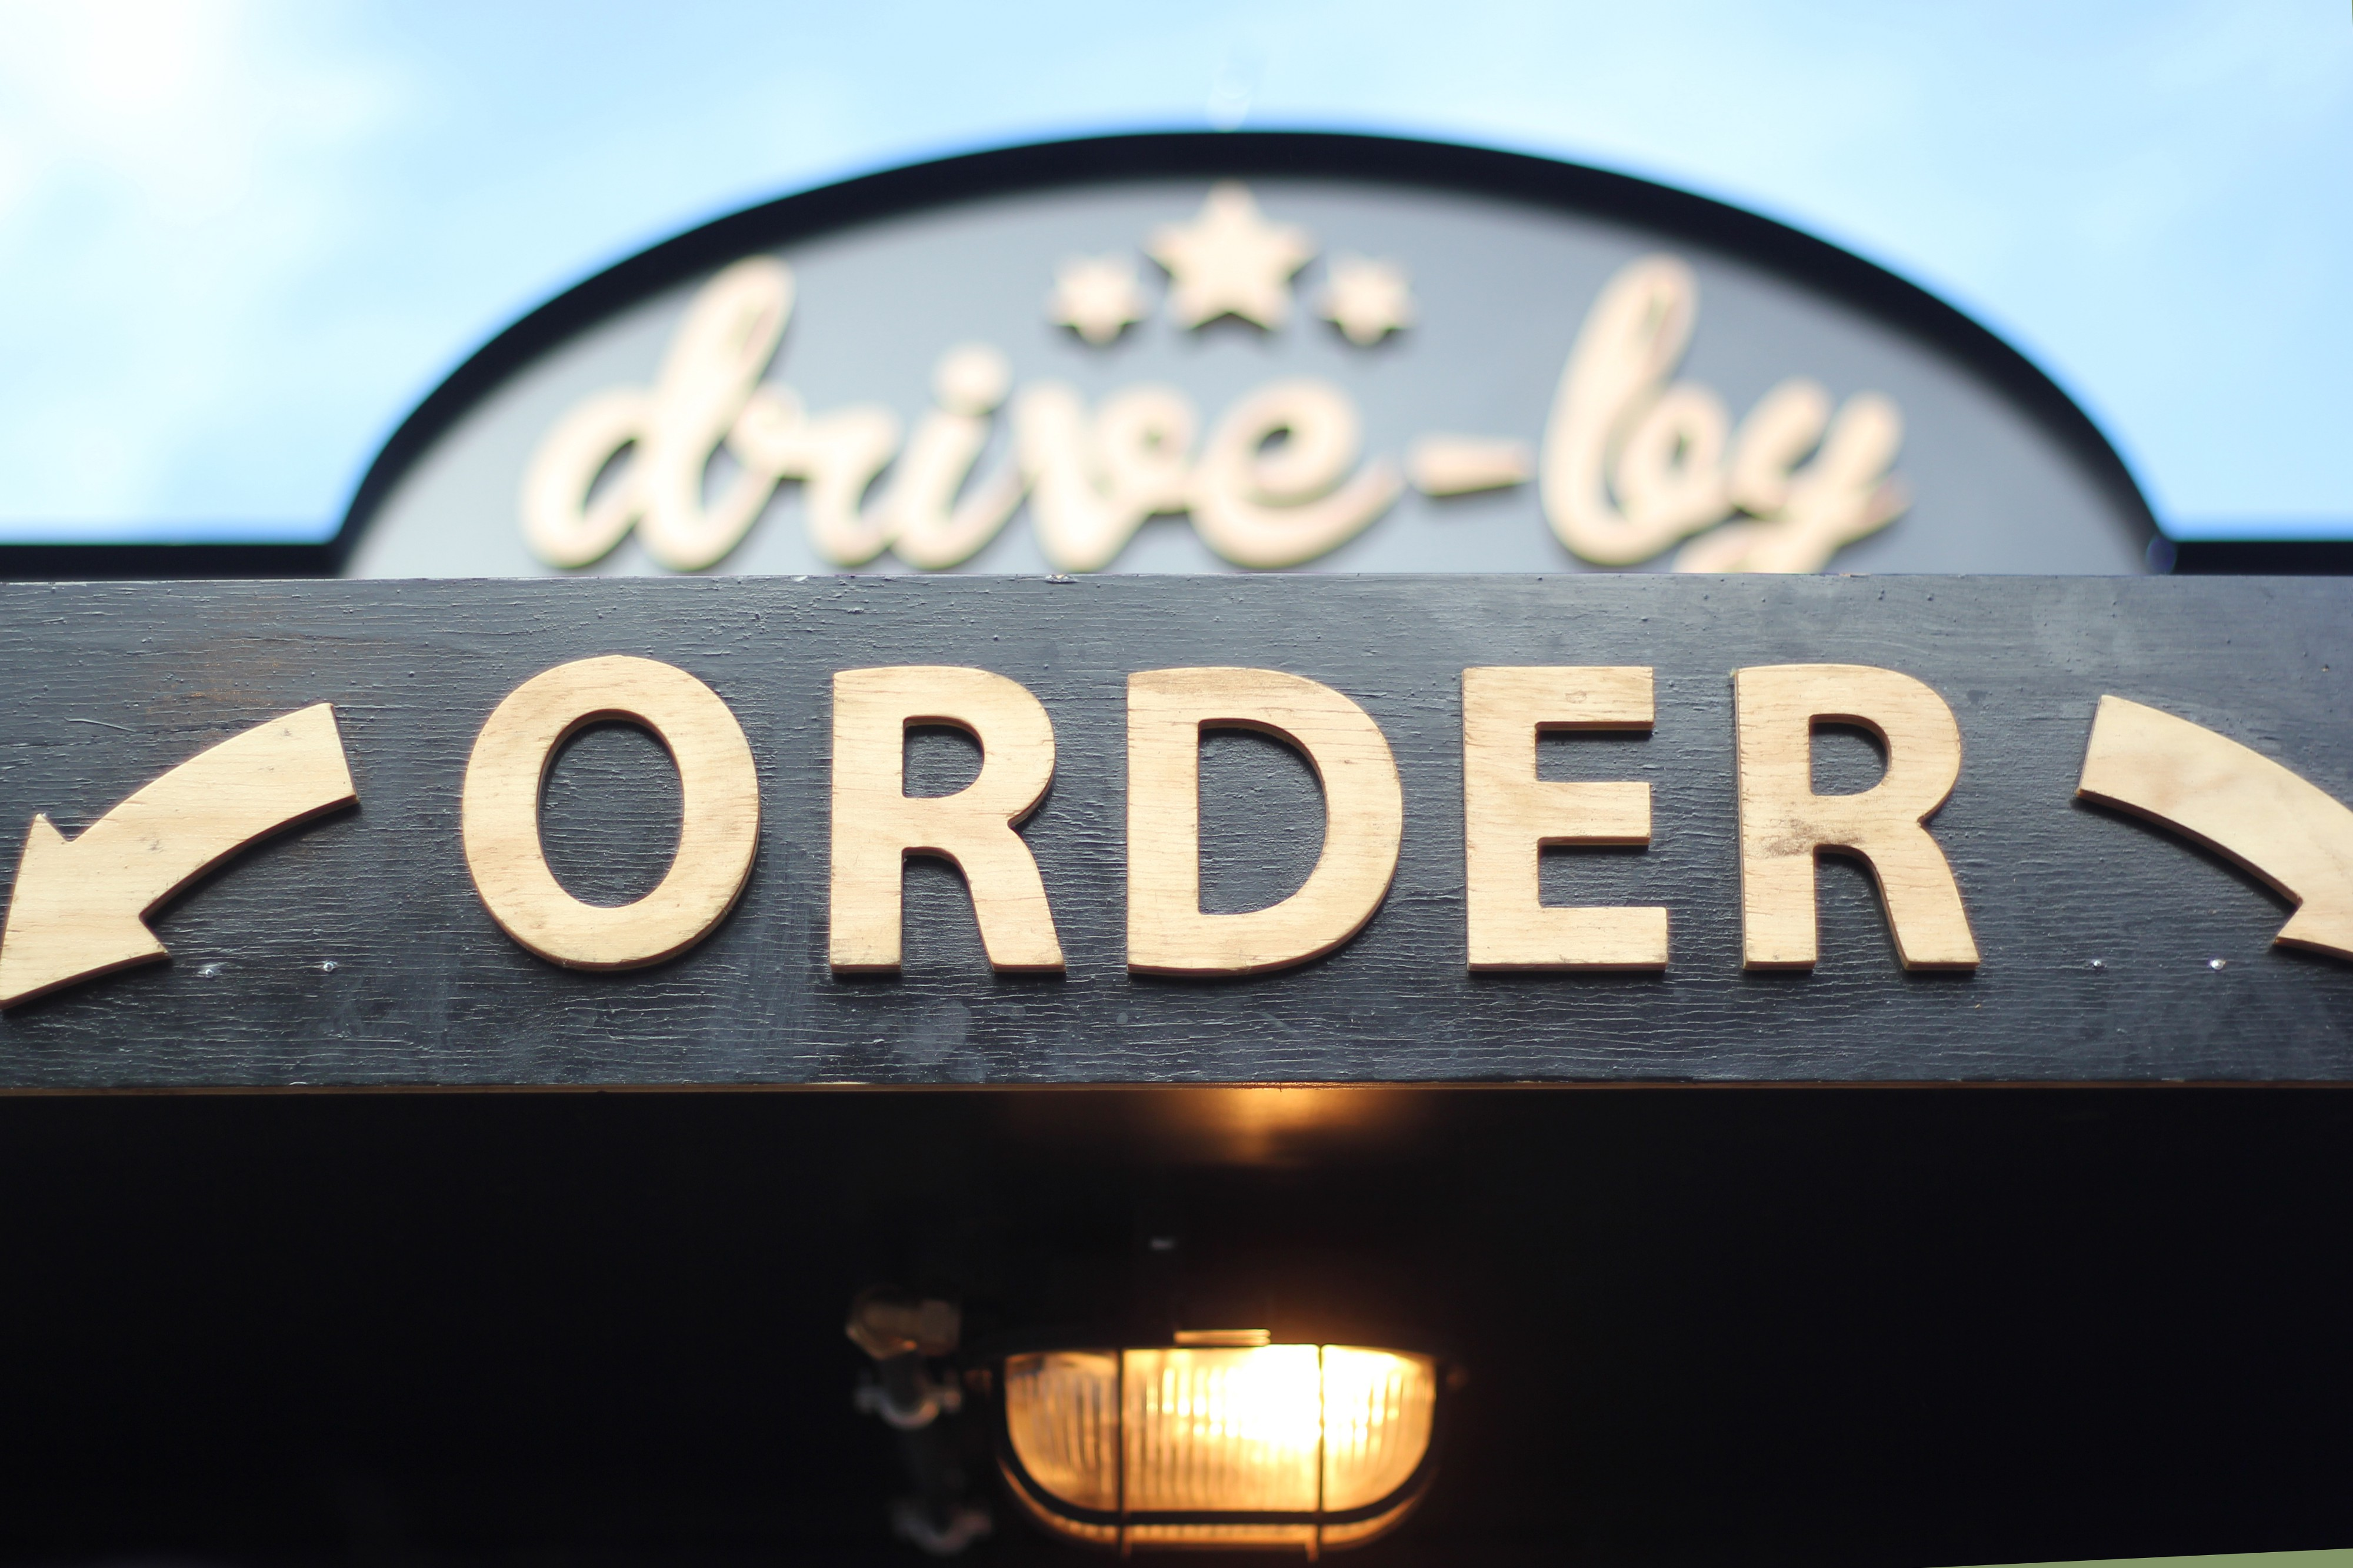 Are you a trend-setter or an order taker